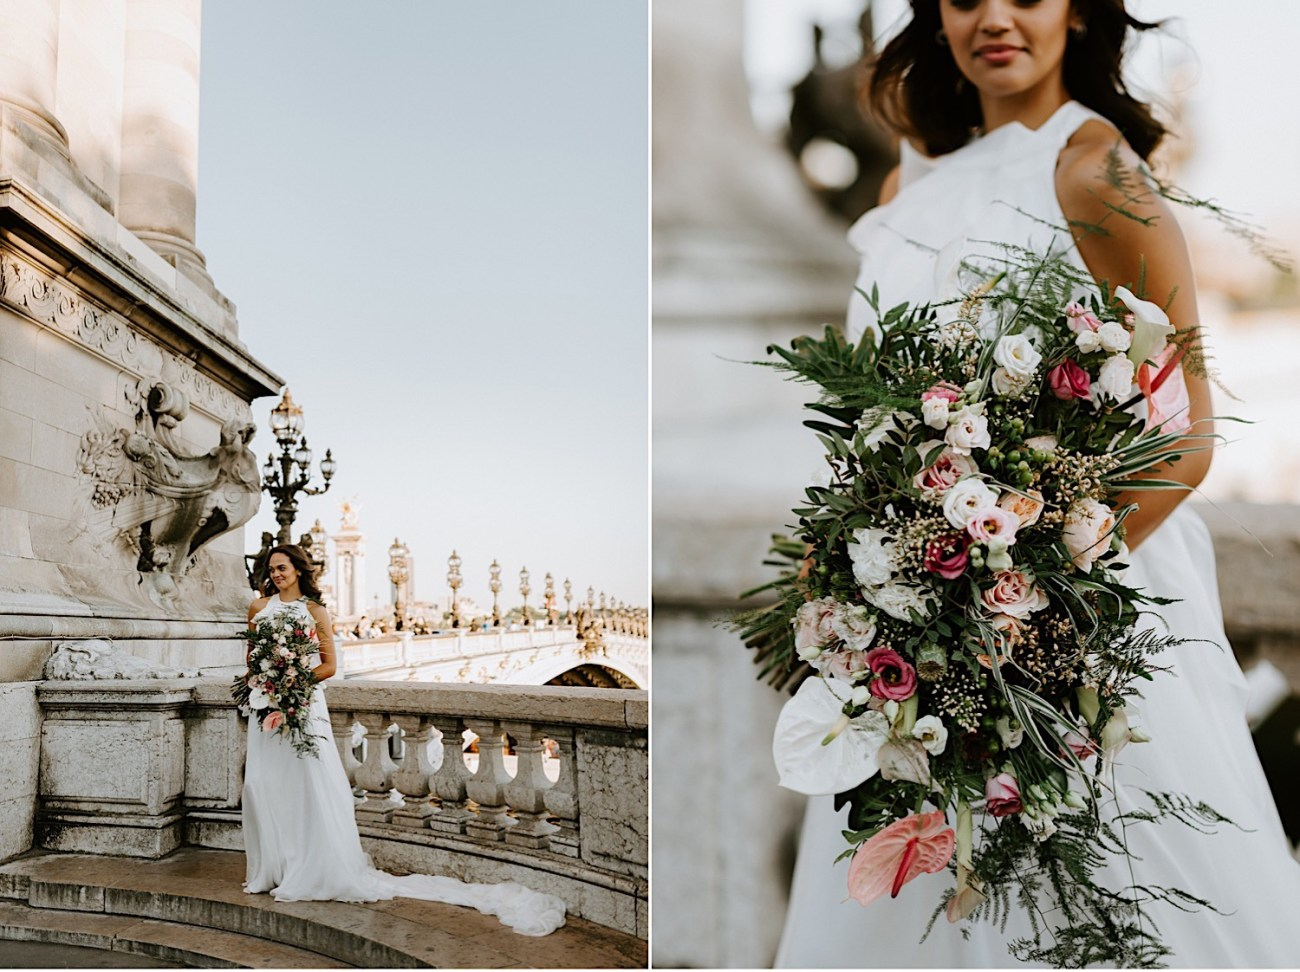 Paris Wedding Photos Paris Wedding Photographer Paris Photographe De Marriage Pont Alexandre Wedding Photos Anais Possamai Photography 24